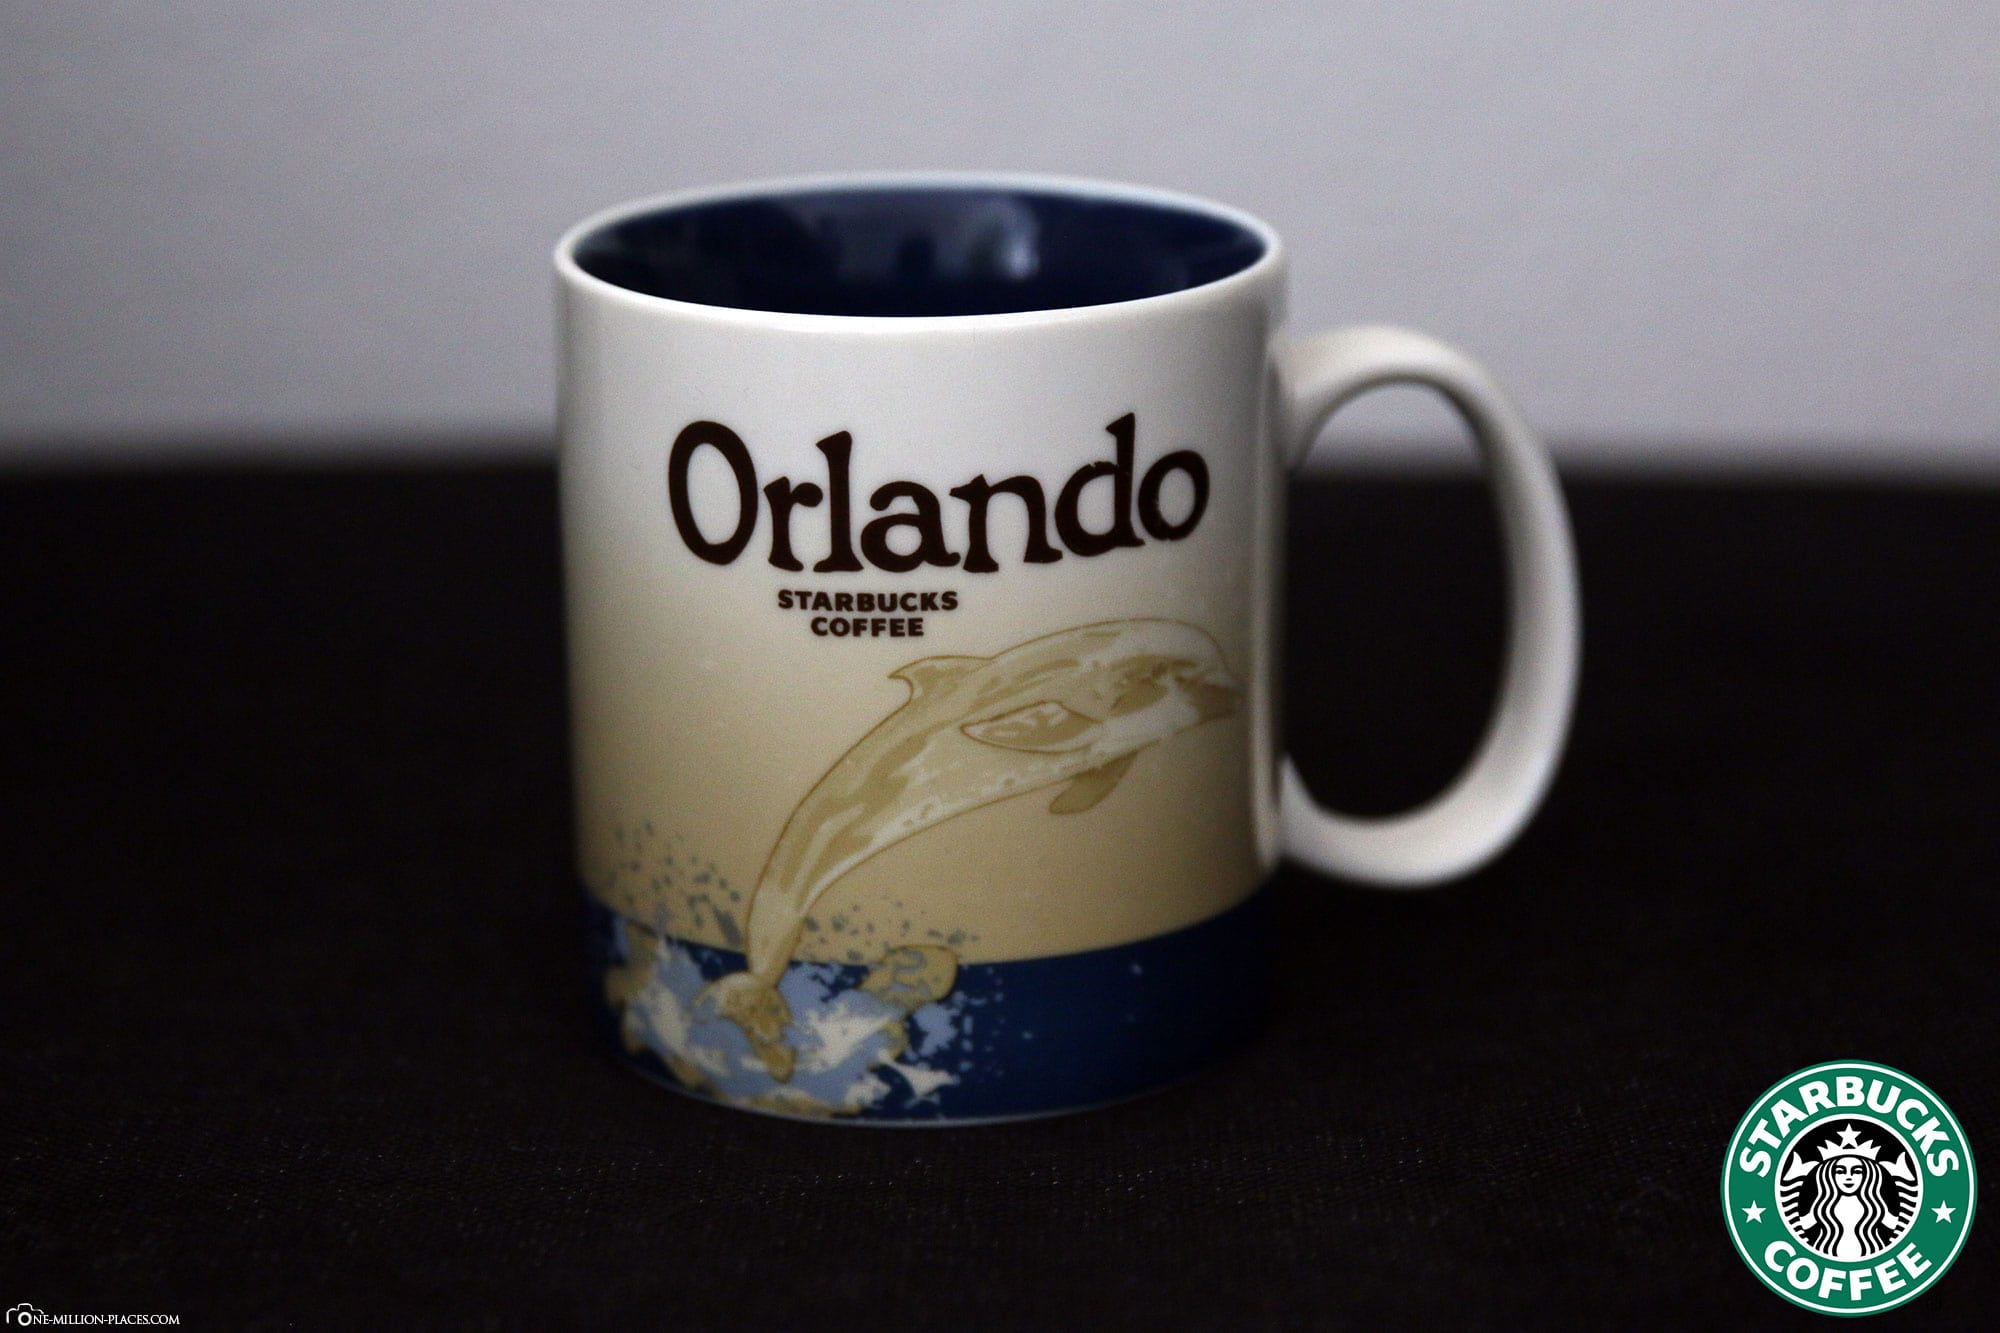 Orlando, Starbucks Cup, Global Icon Series, City Mugs, Collection, USA, Travelreport